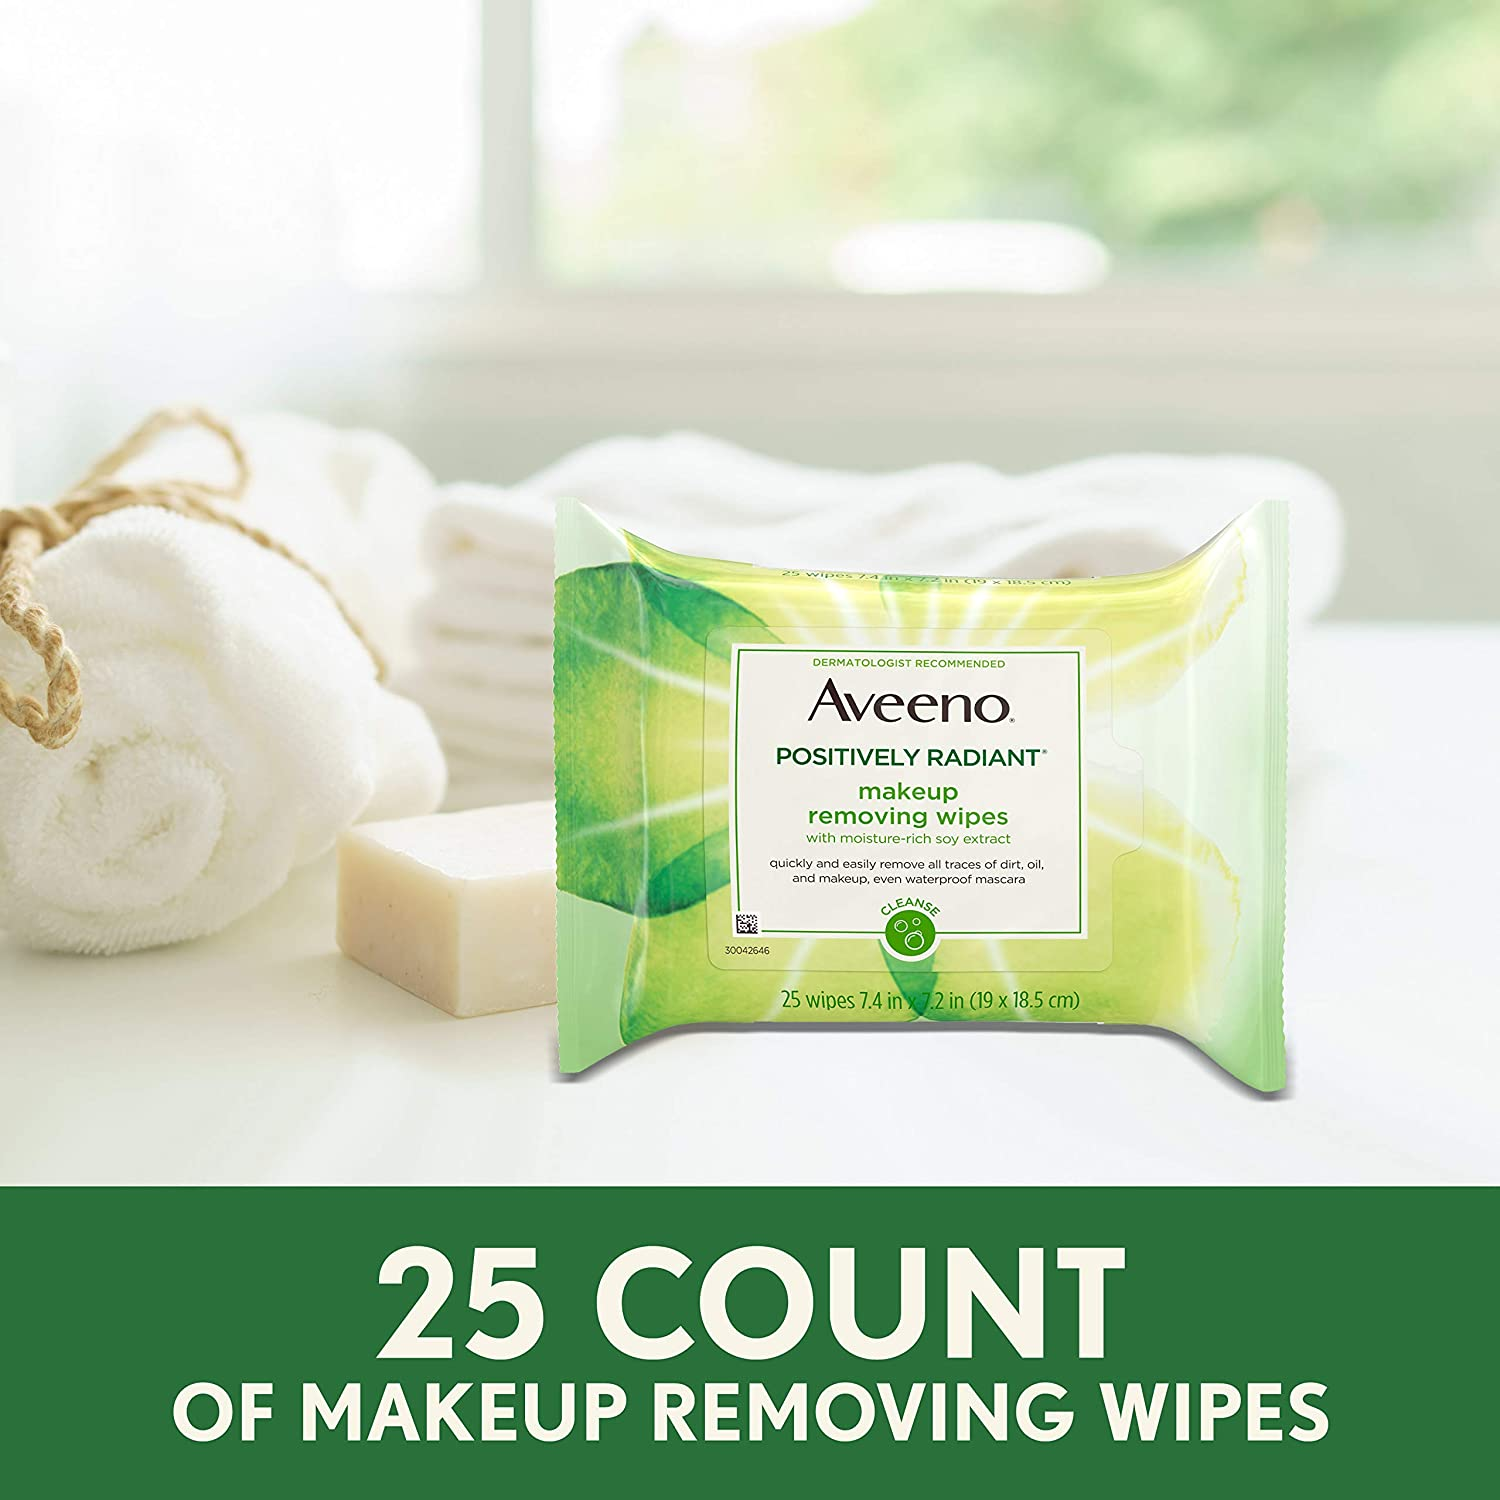 Aveeno Positively Radiant Oil-Free Makeup Removing Facial Cleansing Wipes to Help Even Skin Tone & Texture with Moisture-Rich Soy Extract, Gentle & Non-Comedogenic, 25 ct.: Beauty